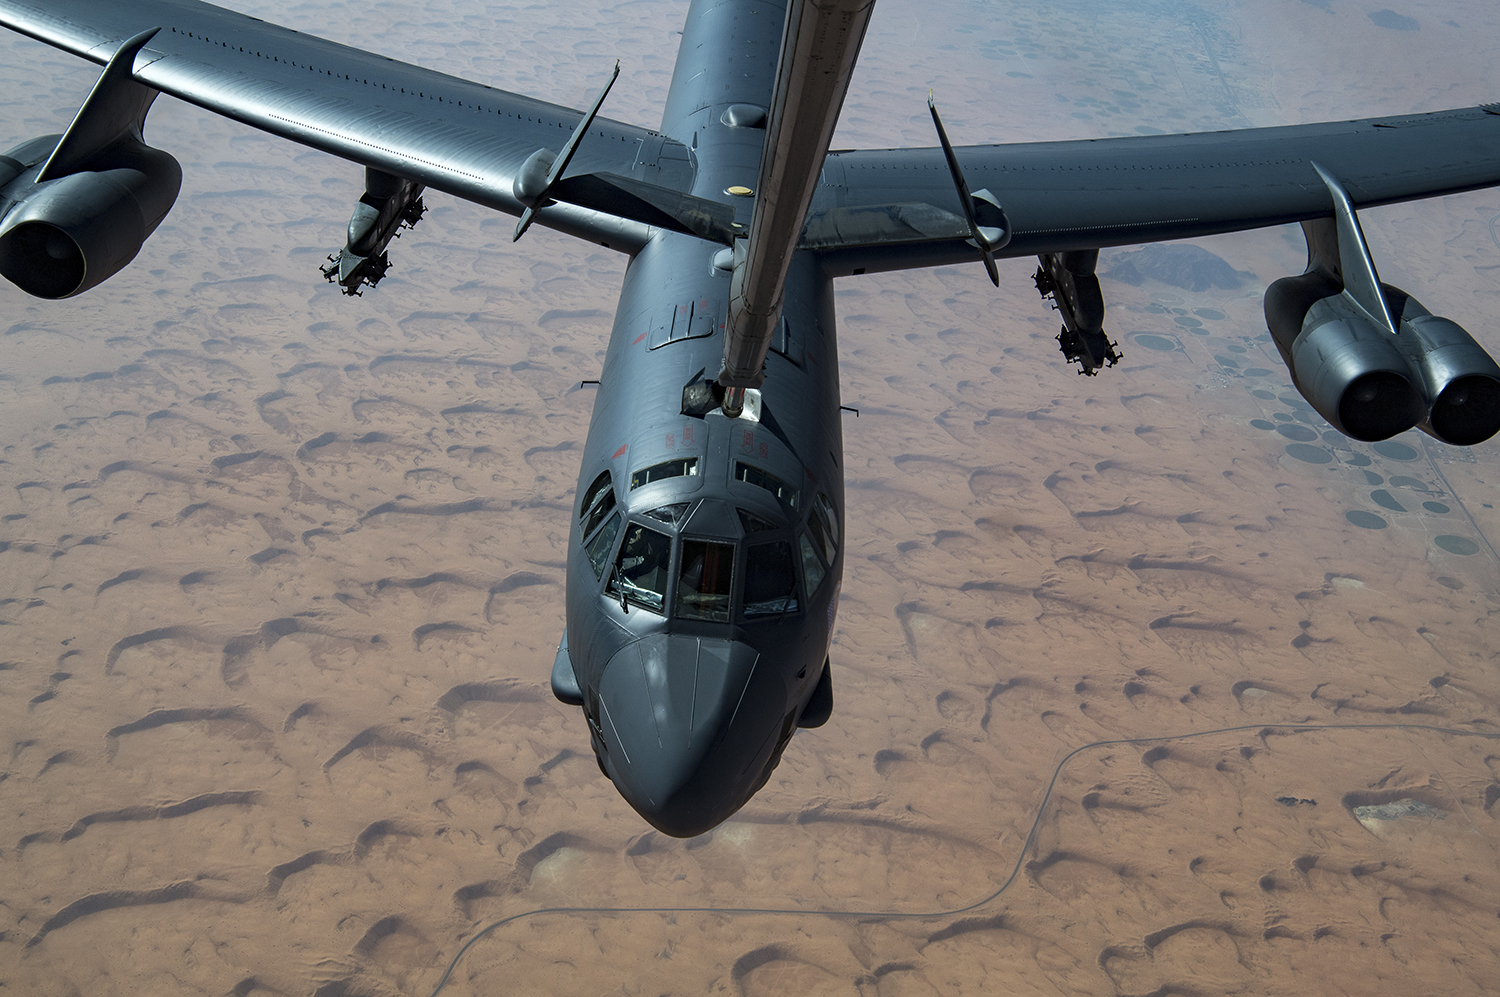 A U.S. Air Force B-52H Stratofortress receives fuel via aerial refueling from a KC-10 Extender above the Arabian Gulf, Nov. 1, 2019. (Staff Sgt. Daniel Snider/Air Force)